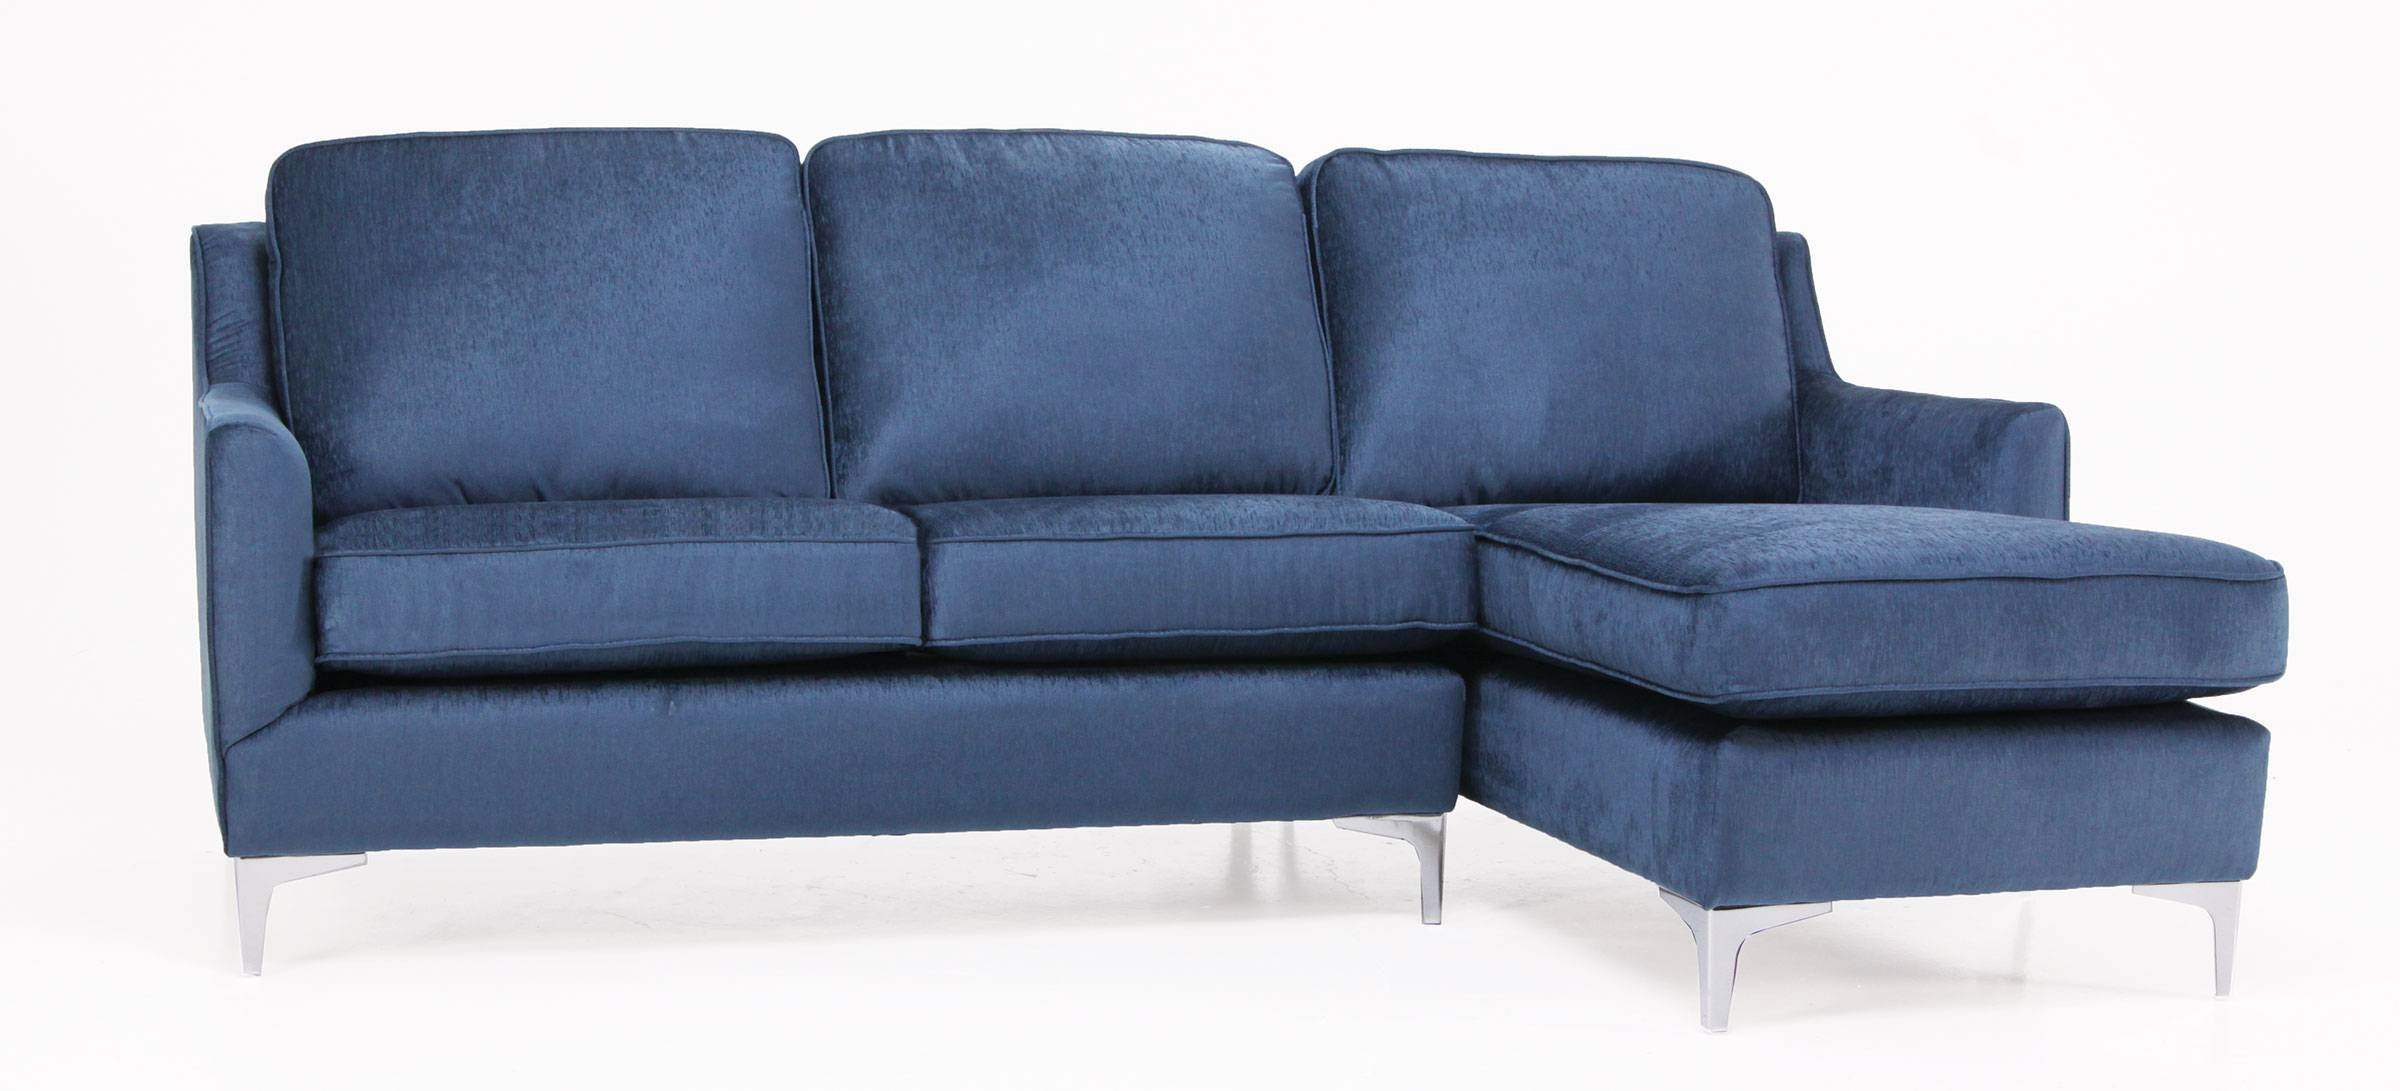 Sofa: Sears Sectional | Sleeper Sofa Mattress | Sears Sofa Bed within Sears Sleeper Sofas (Image 10 of 15)